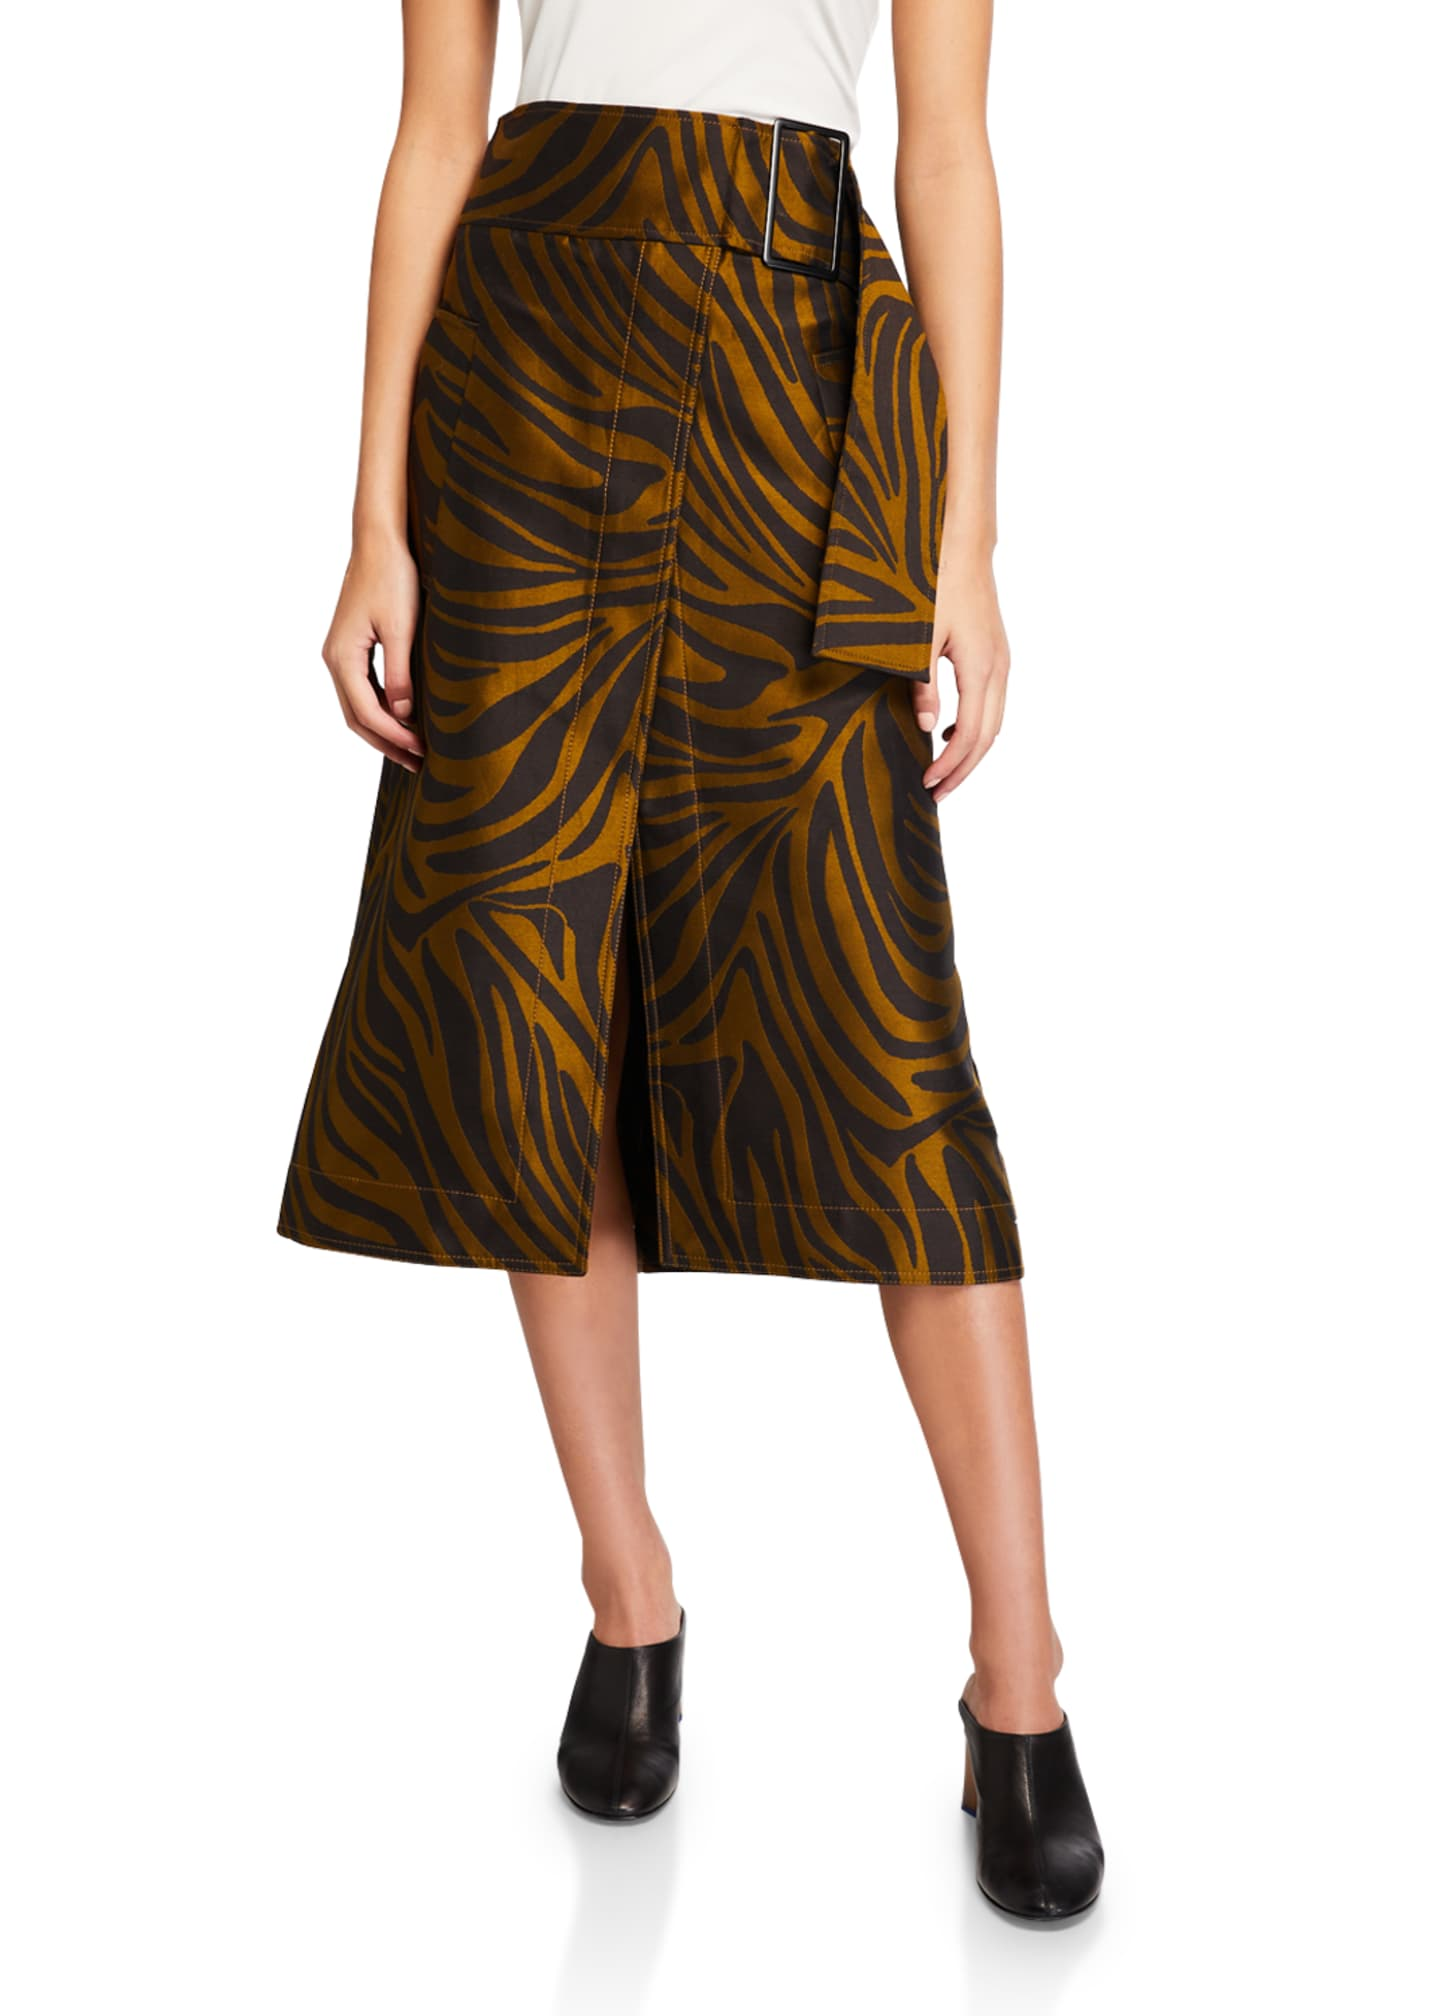 3.1 Phillip Lim Zebra-Print Belted Topstitch Skirt